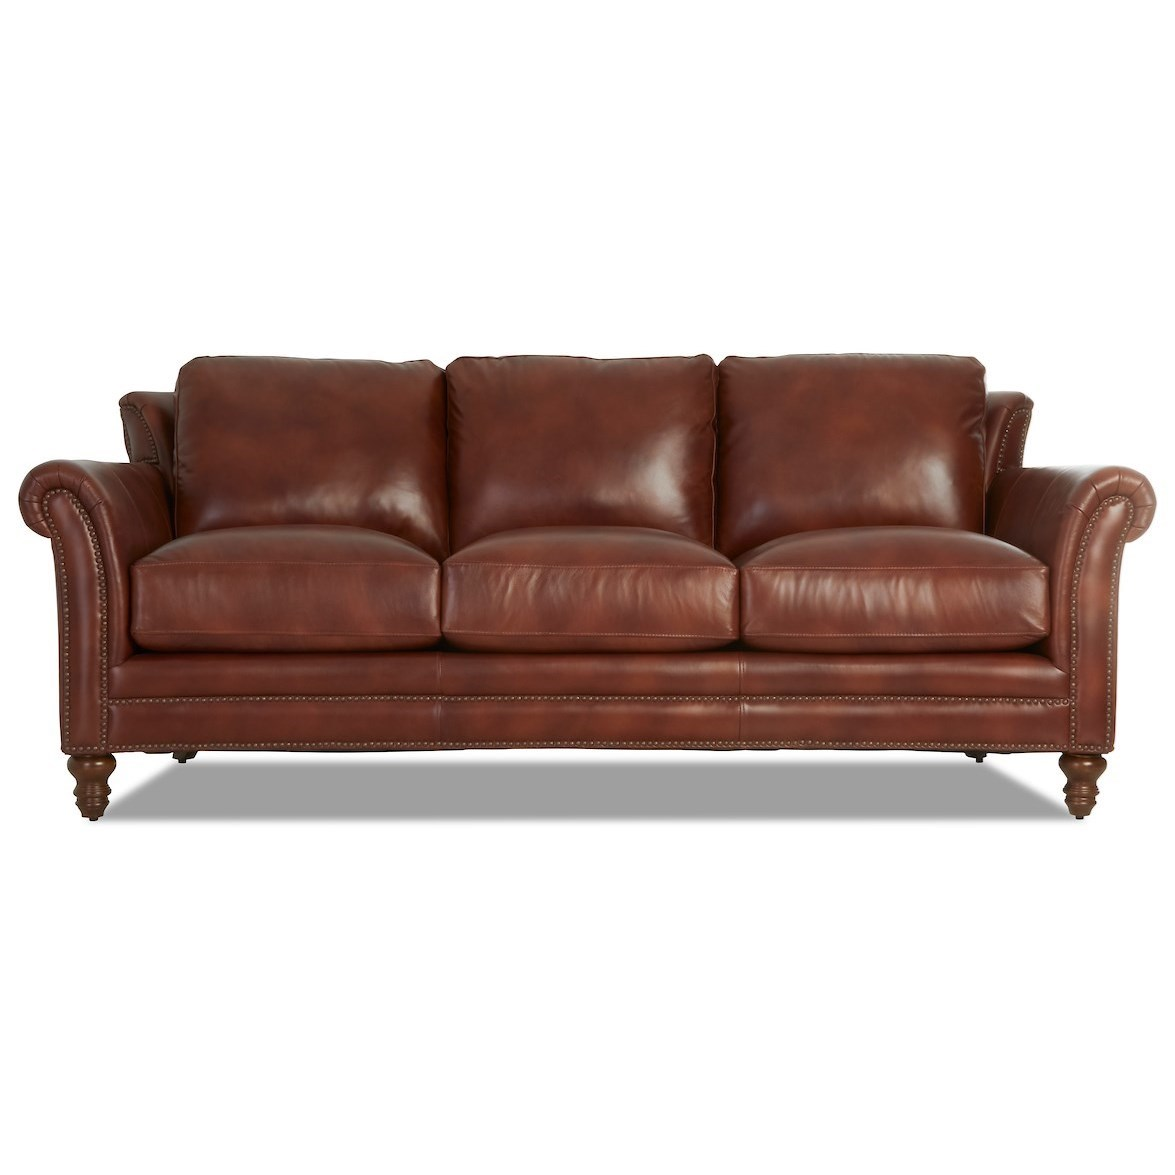 Traditional Leather Wing Back Sofa with Nailhead Trim